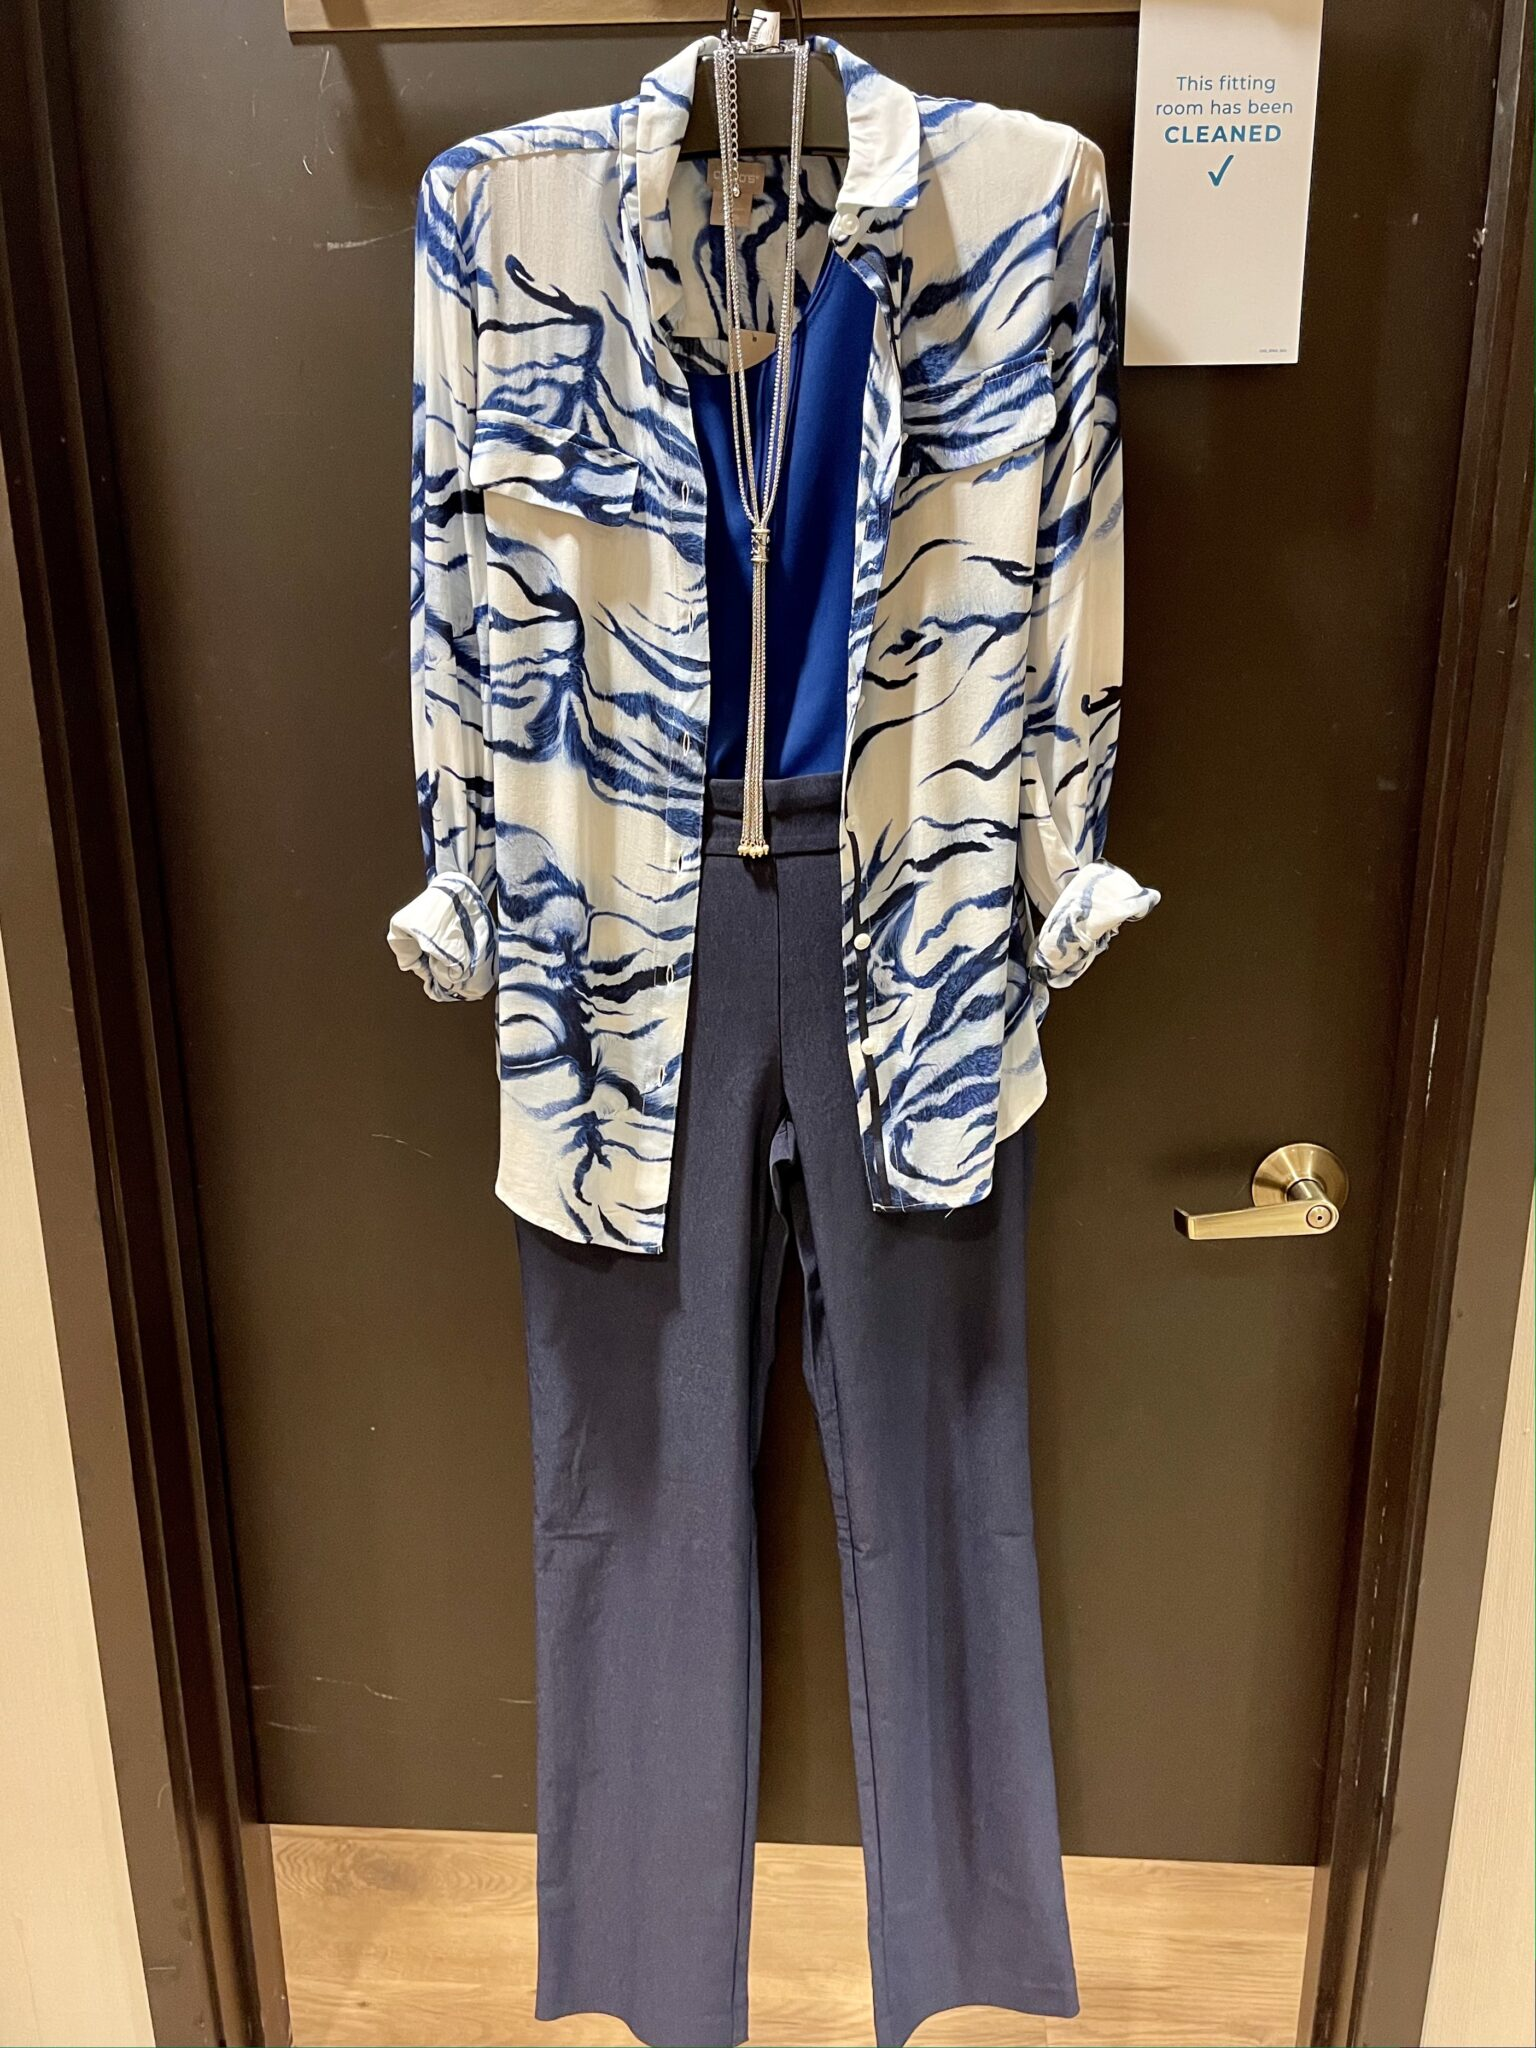 Wardrobe transition ideas at Chicos from professional to retired life